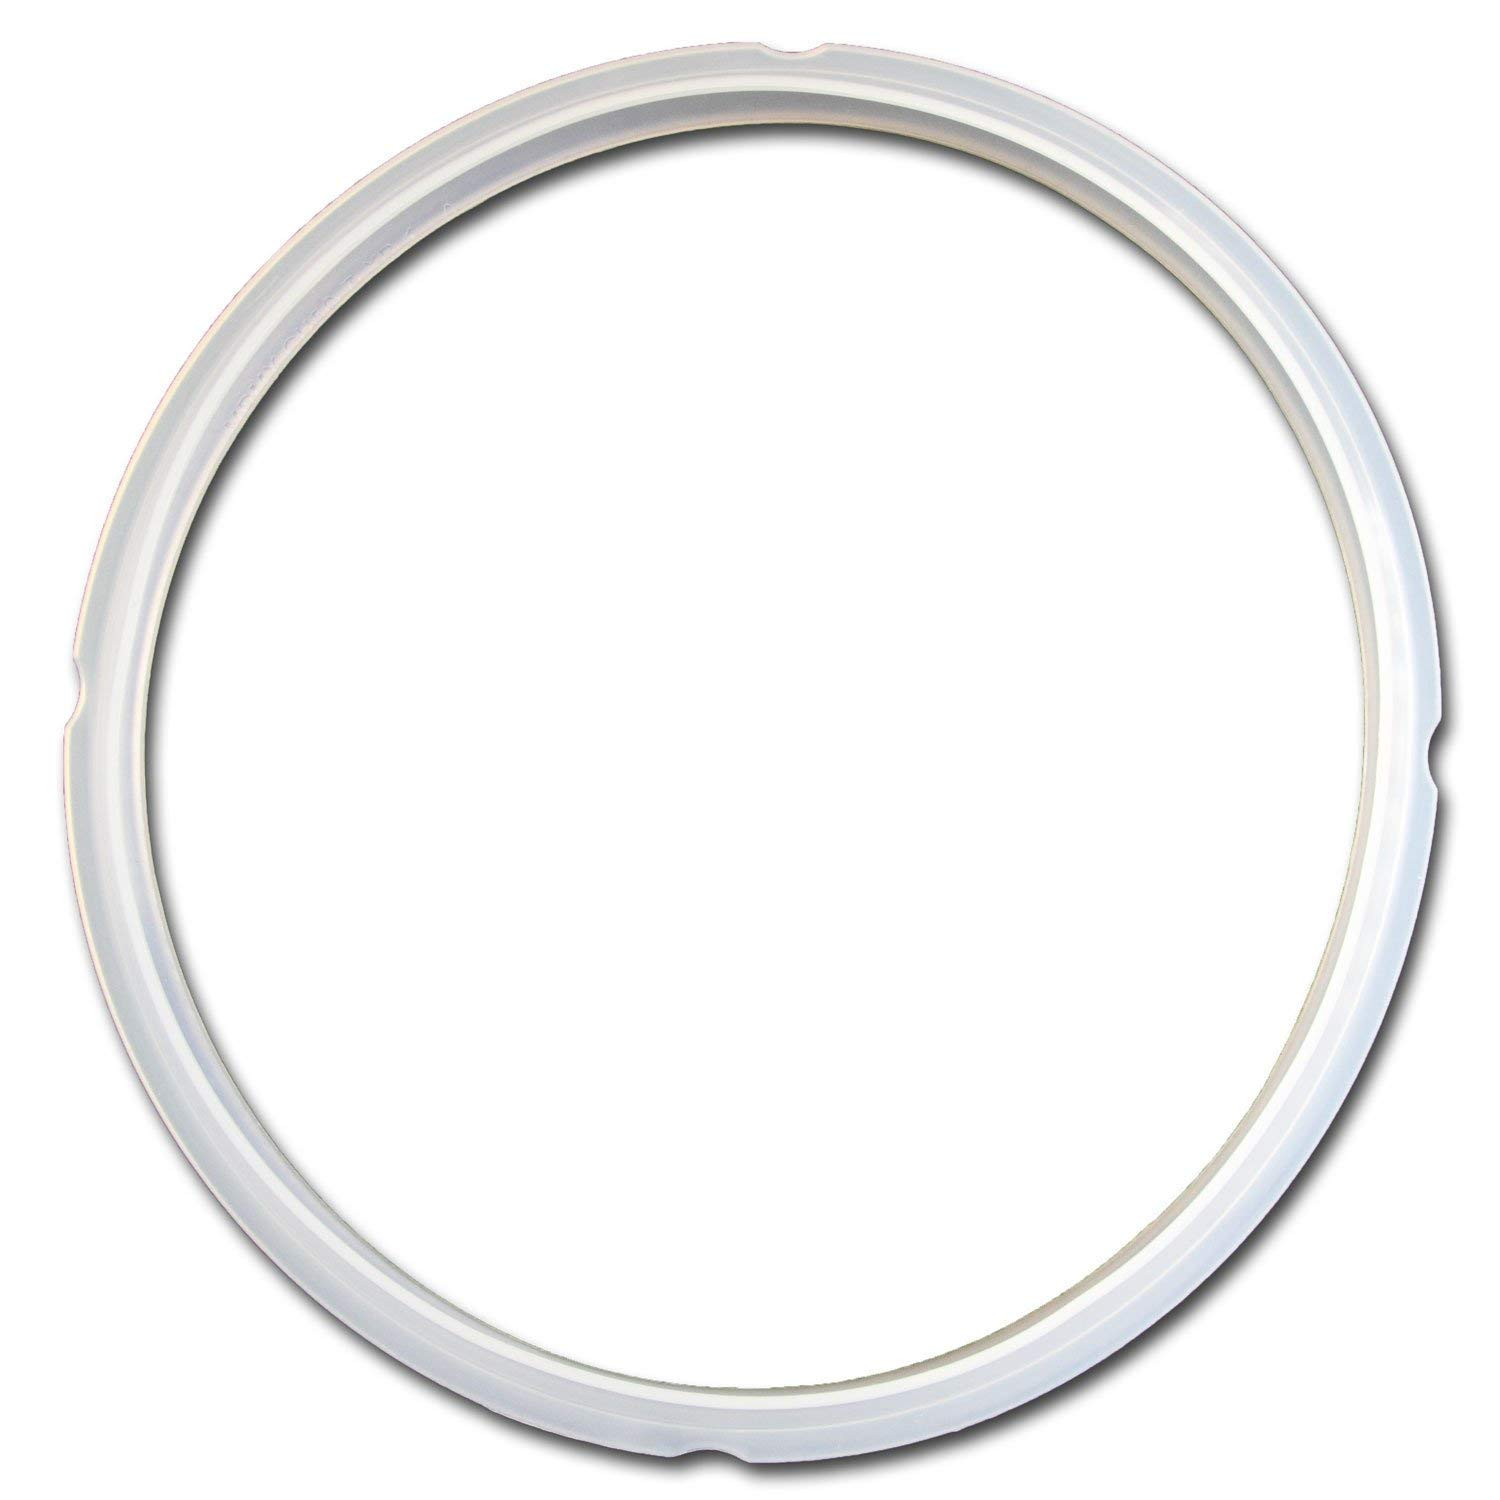 Rubber Seal Ring For Elite Platinum 8 Quart Electric Pressure Cooker Model: EPC-808SS and EPC-808(A-Z)